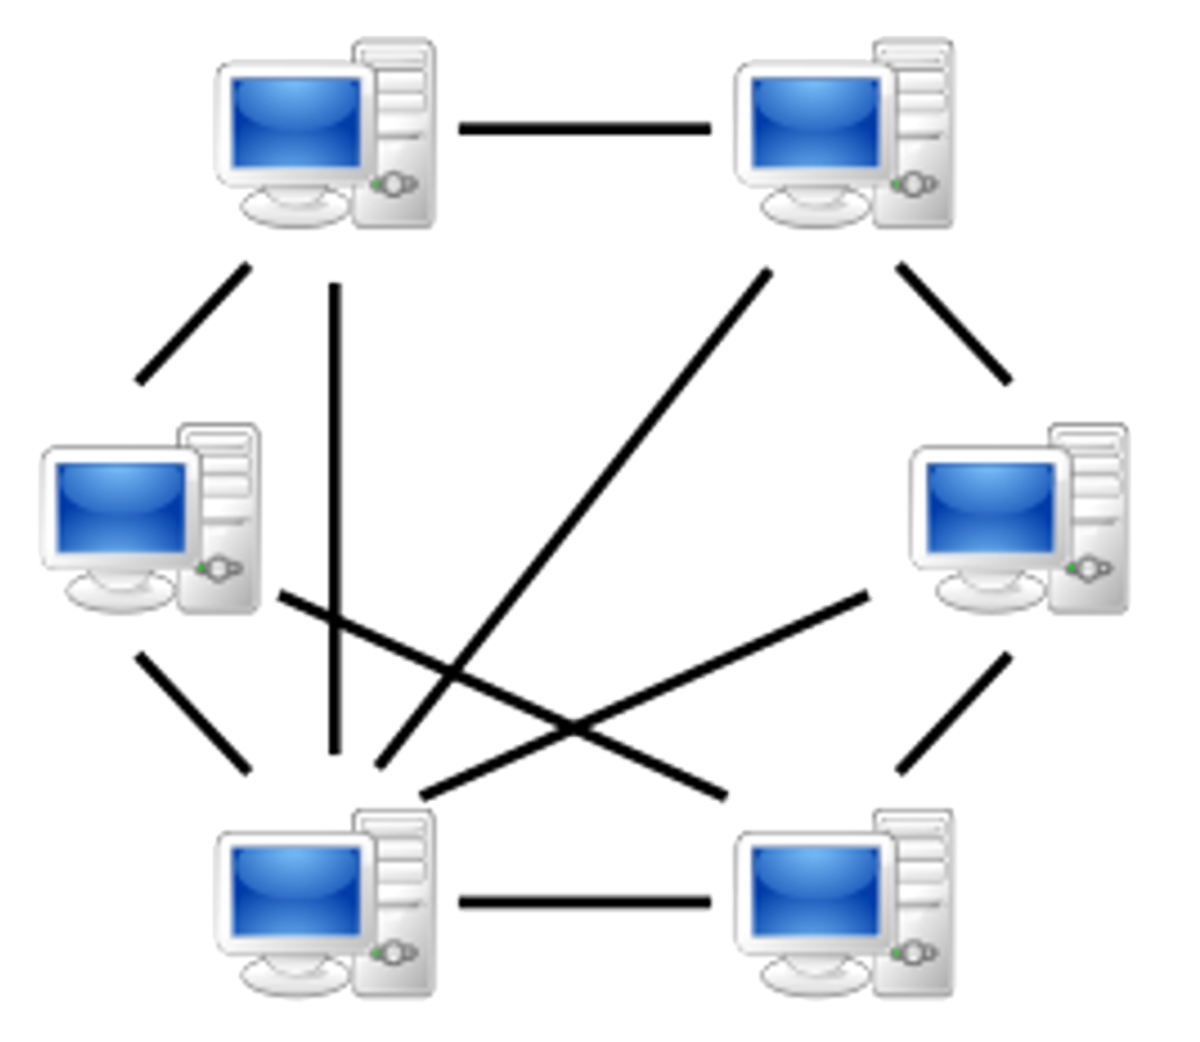 An example of a Peer-to-peer network.